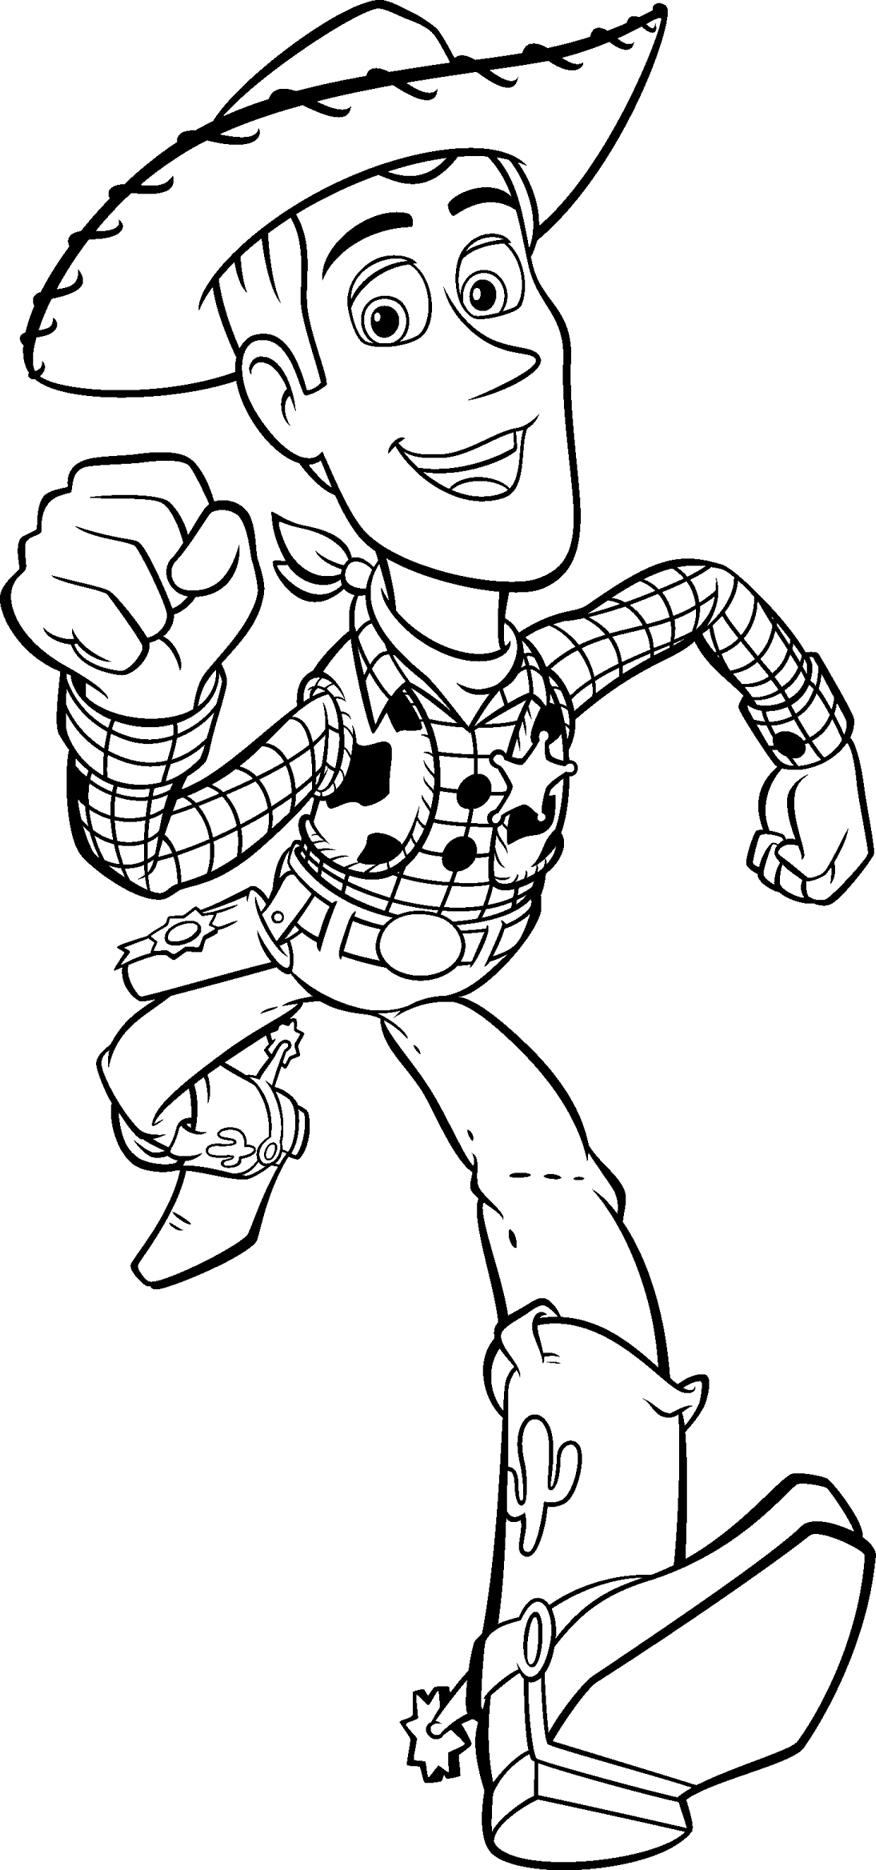 Toy Story 3 Clip Art